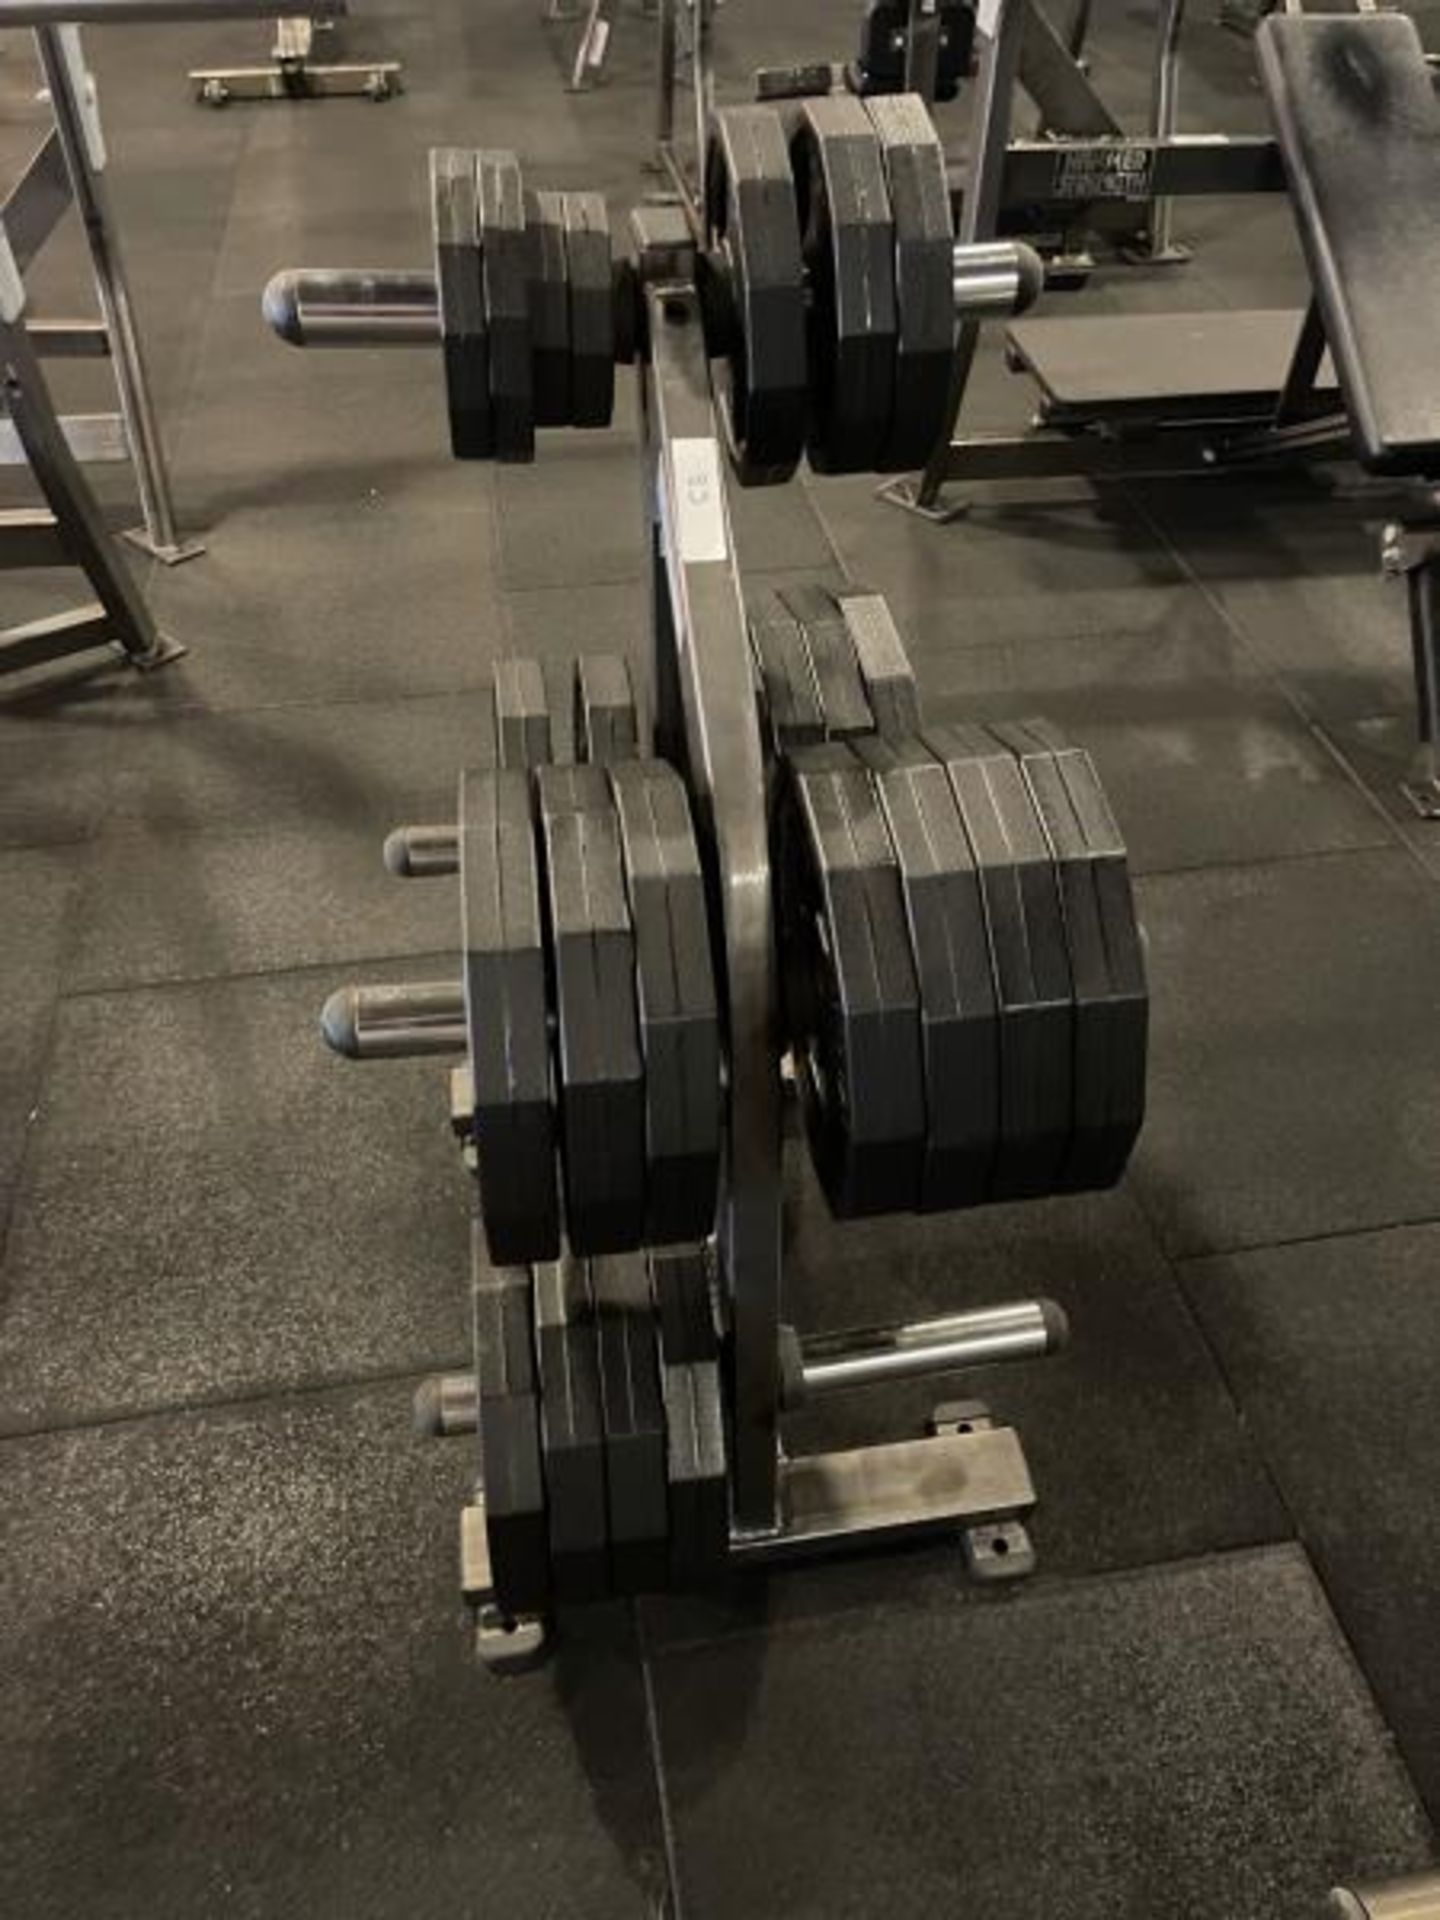 Hammer Strength Weighted Tree with Iron Grip Weight Plates - Image 3 of 3